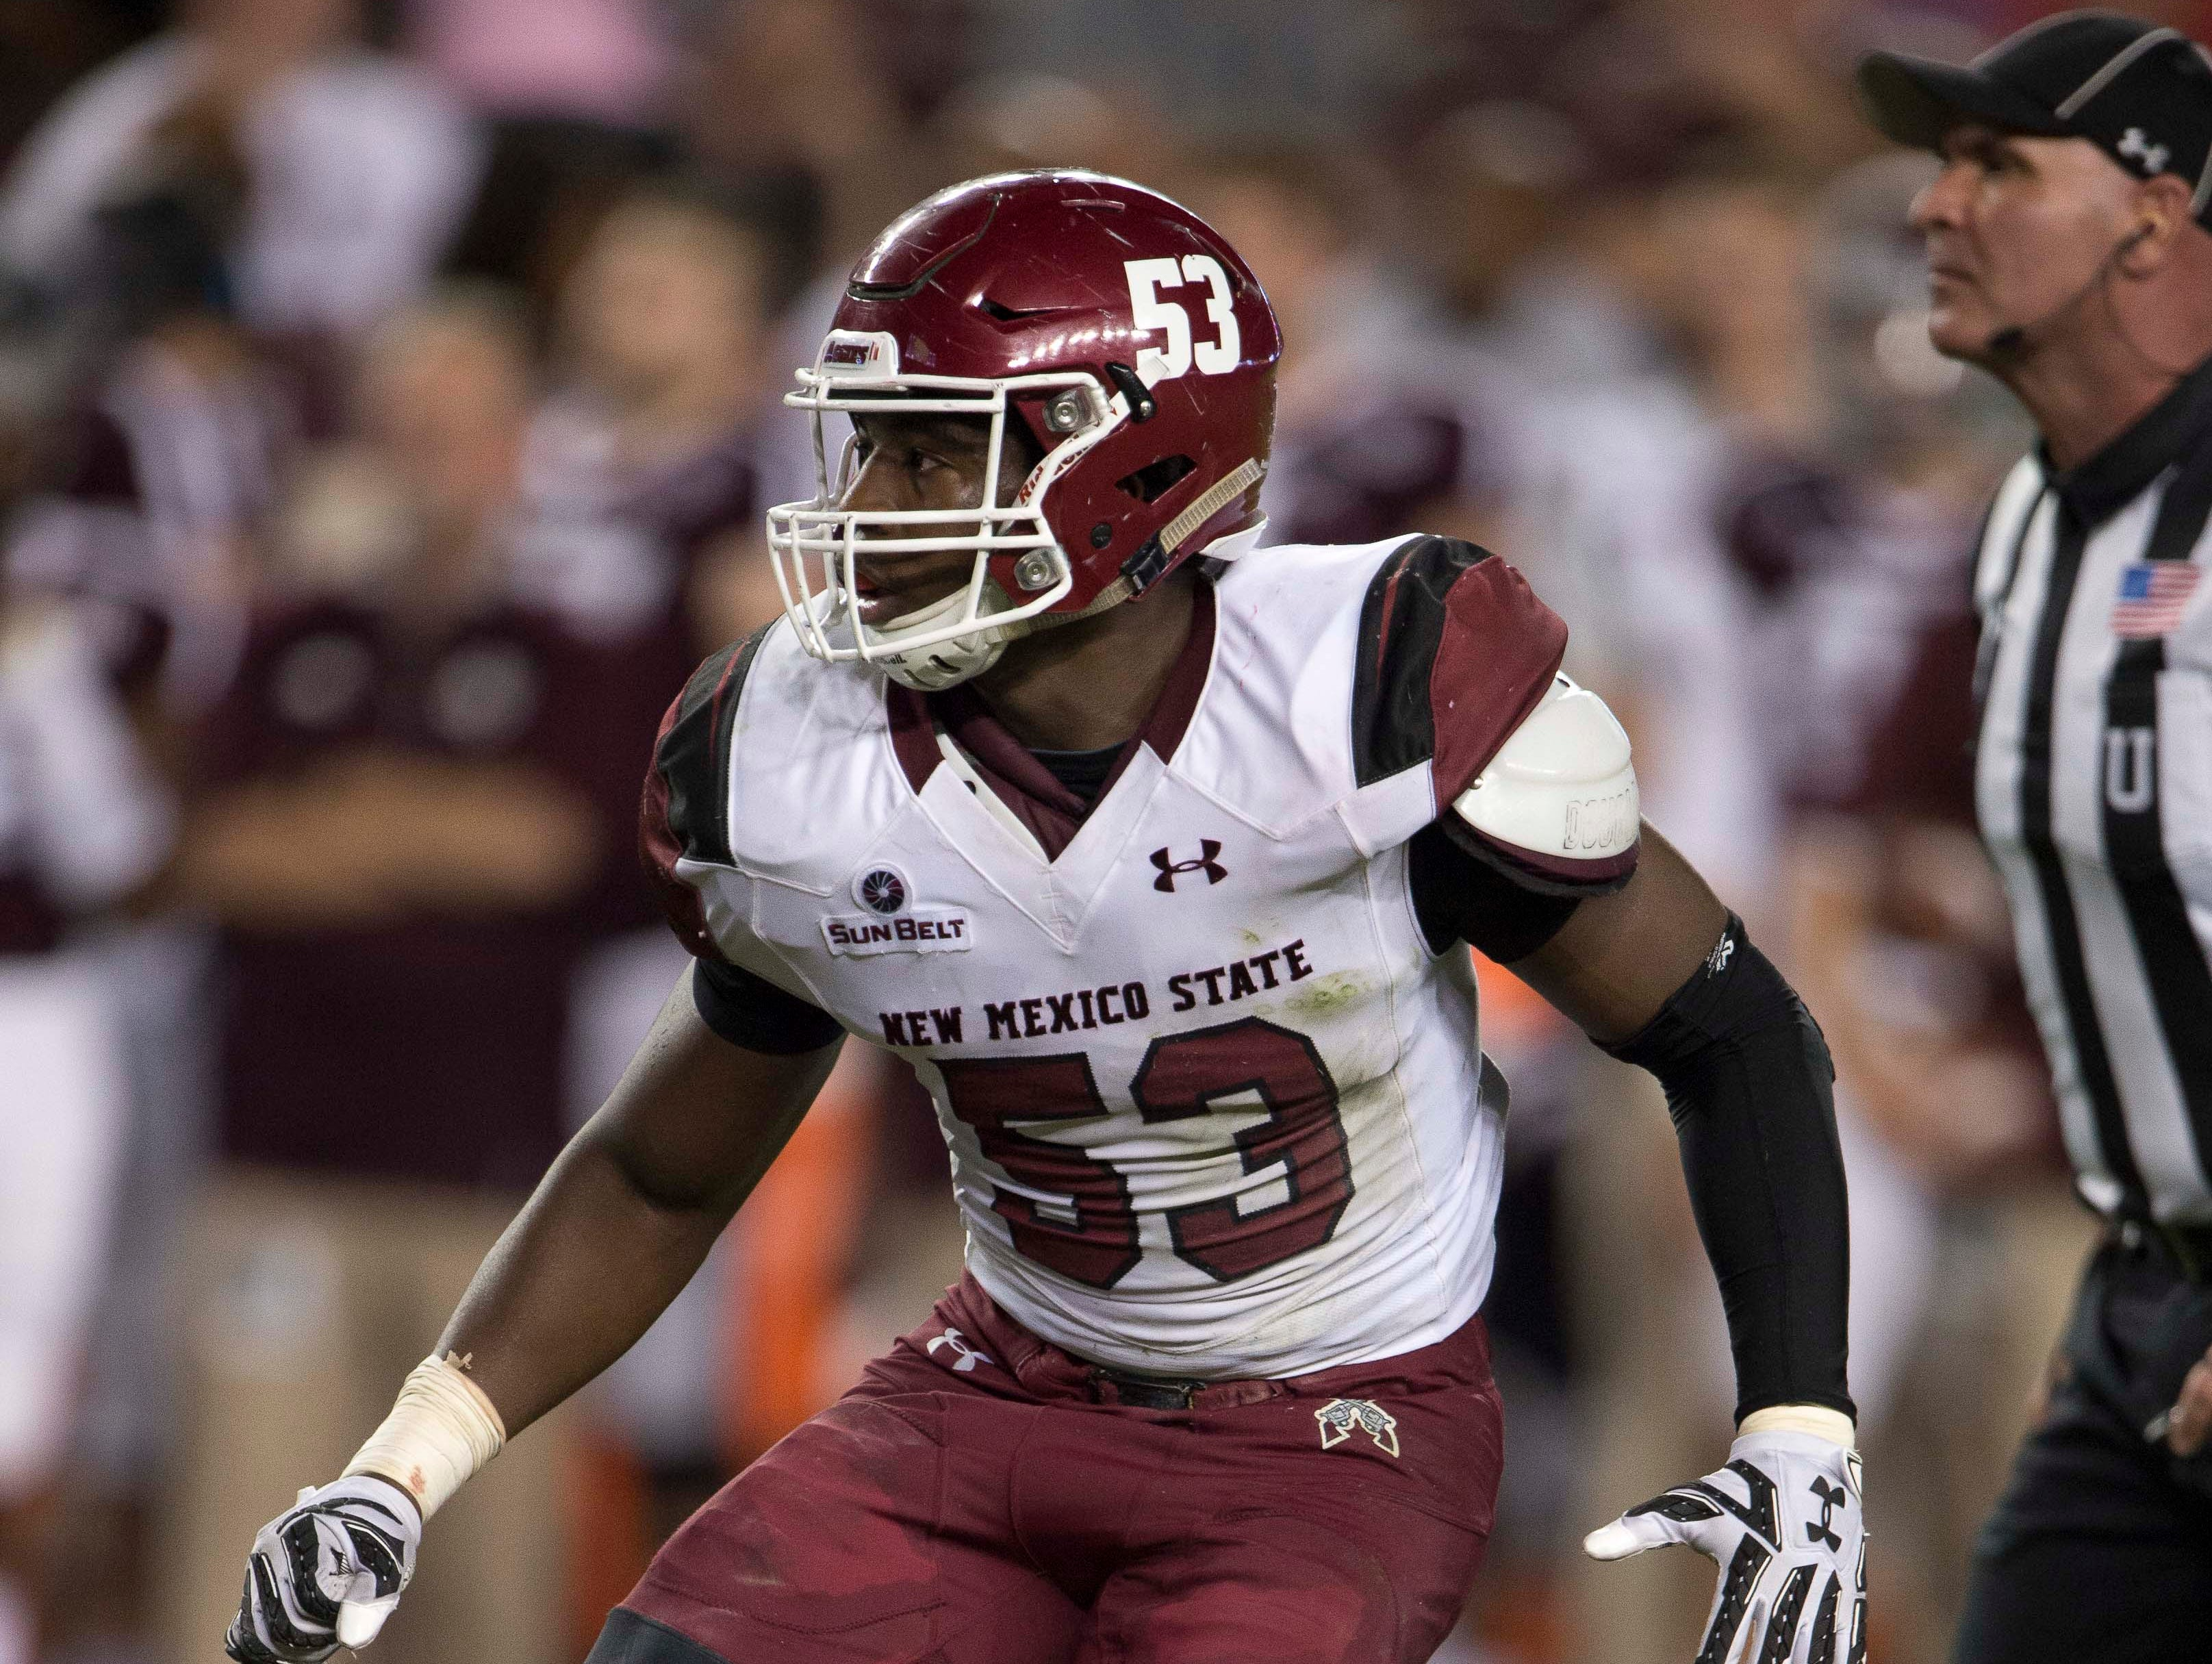 Former New Mexico State and Palm Springs High School linebacker Rodney Butler readies himself during a game at Texas A&M on Oct. 29. Butler led the NCAA in tackles this season and is preparing for the NFL draft.